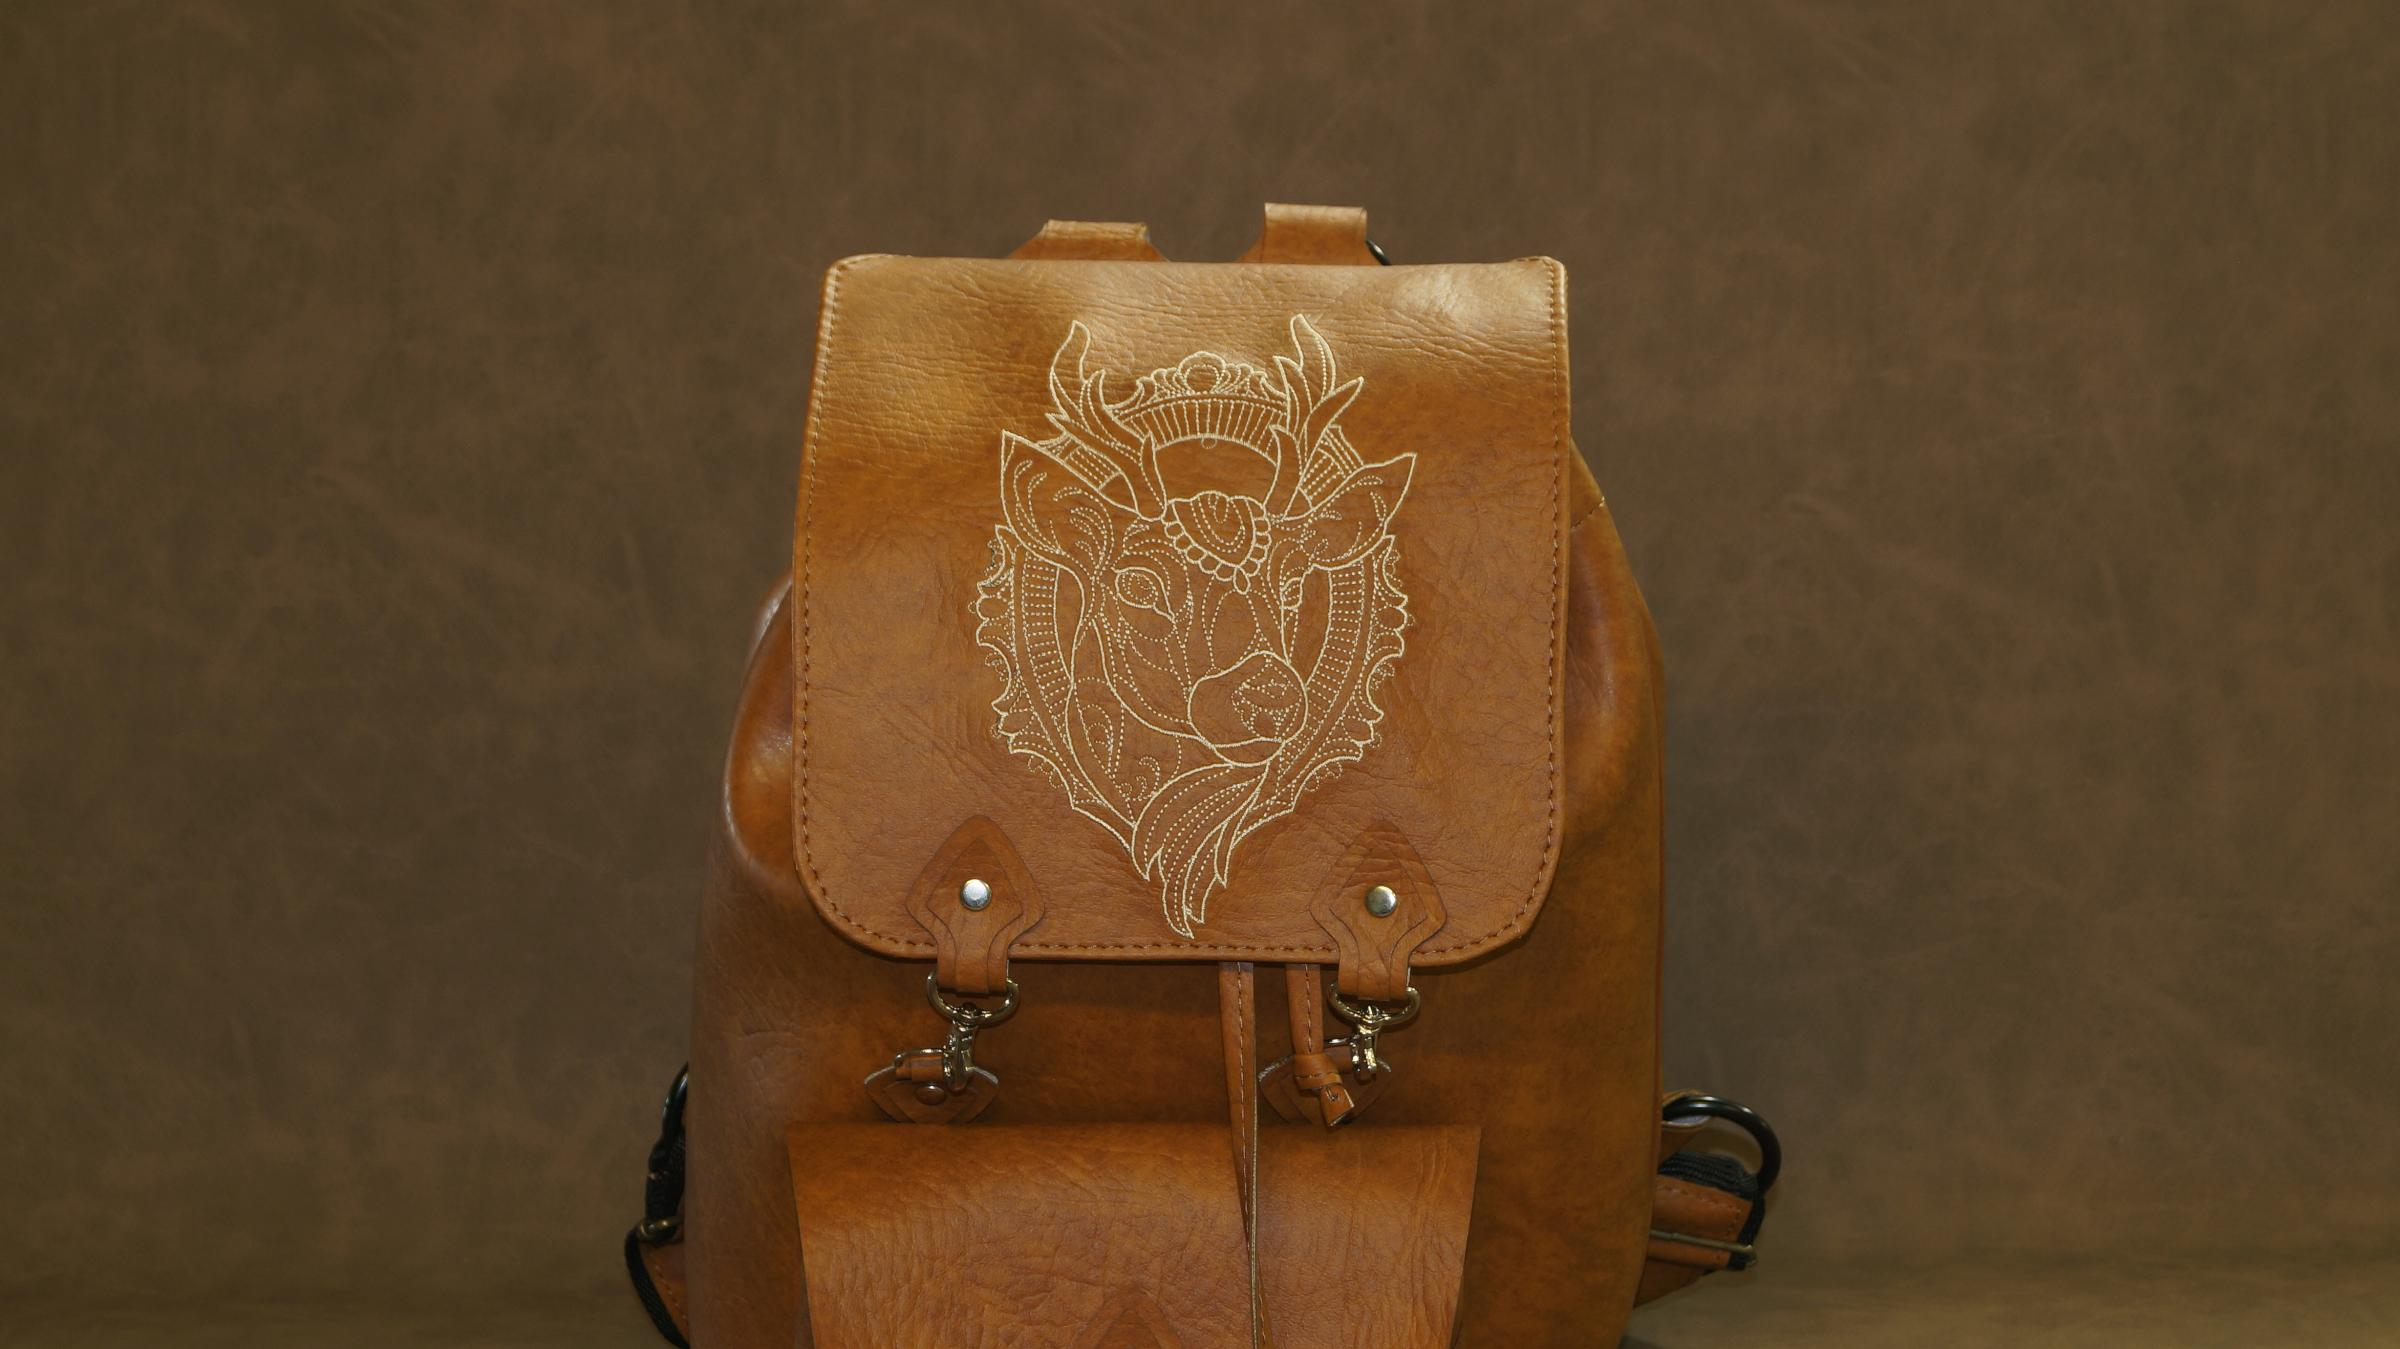 Embroidered backpack with gorgeous deer design